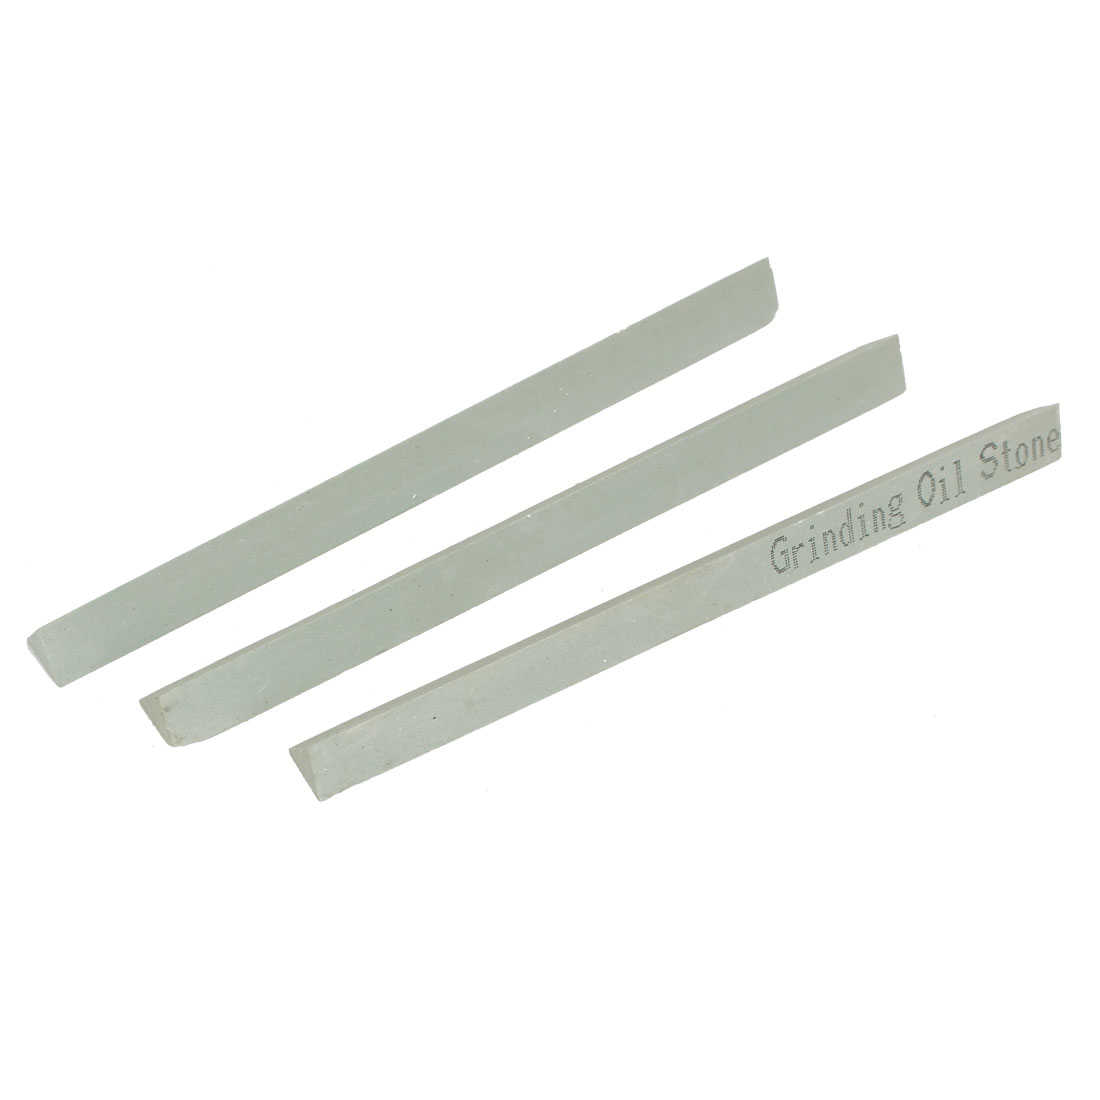 150mm x 13mm x 11mm 600 Grit Oil Stone Sticks Sharpener Green 3 Pcs